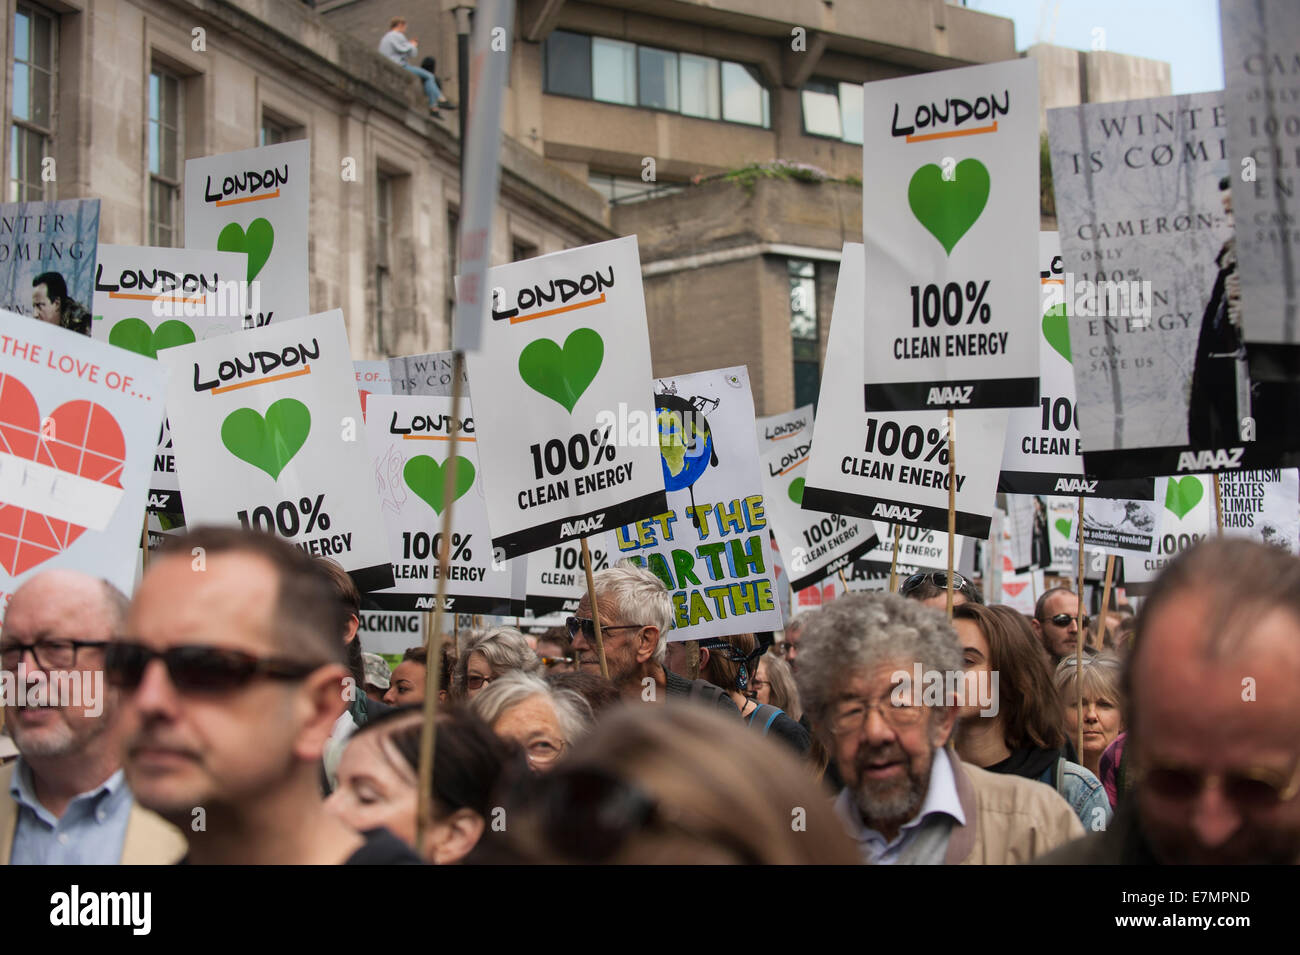 London, UK. 21st Sep, 2014. A forest of placards is held aloft at the Climate Change demonstration, London, 21st - Stock Image